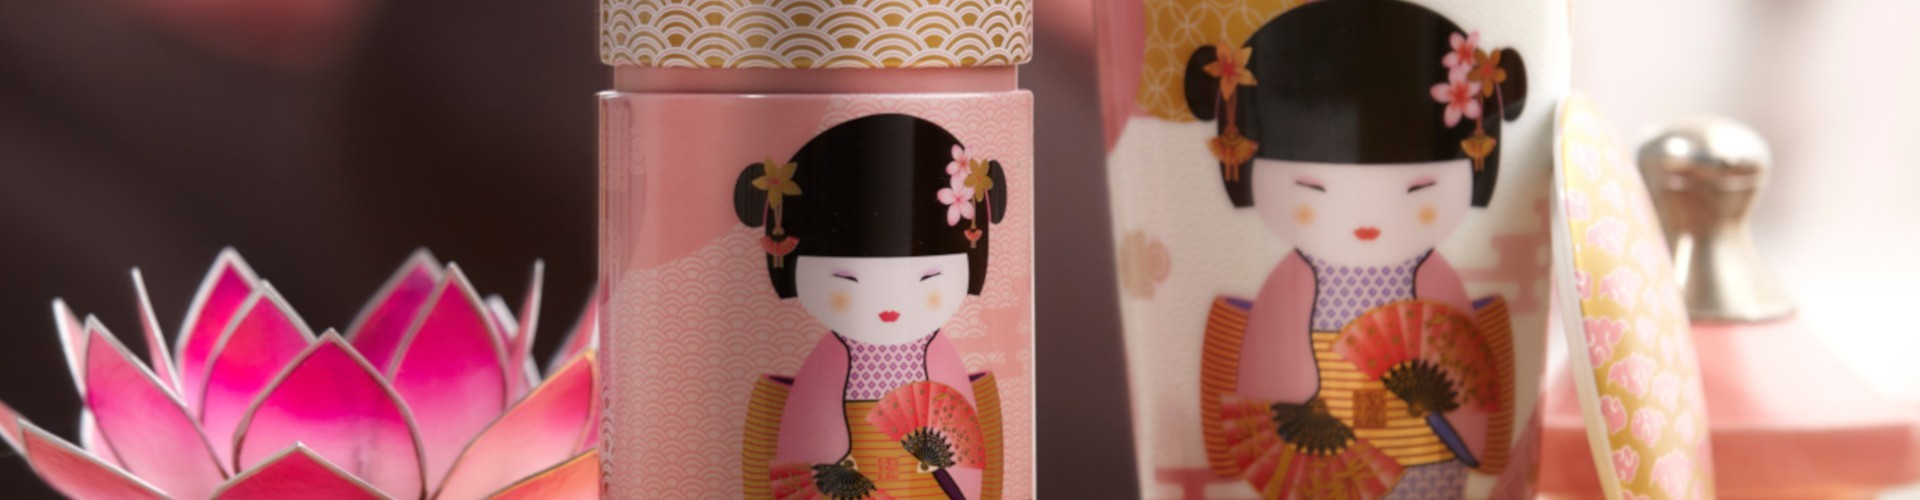 New Little Geisha sada